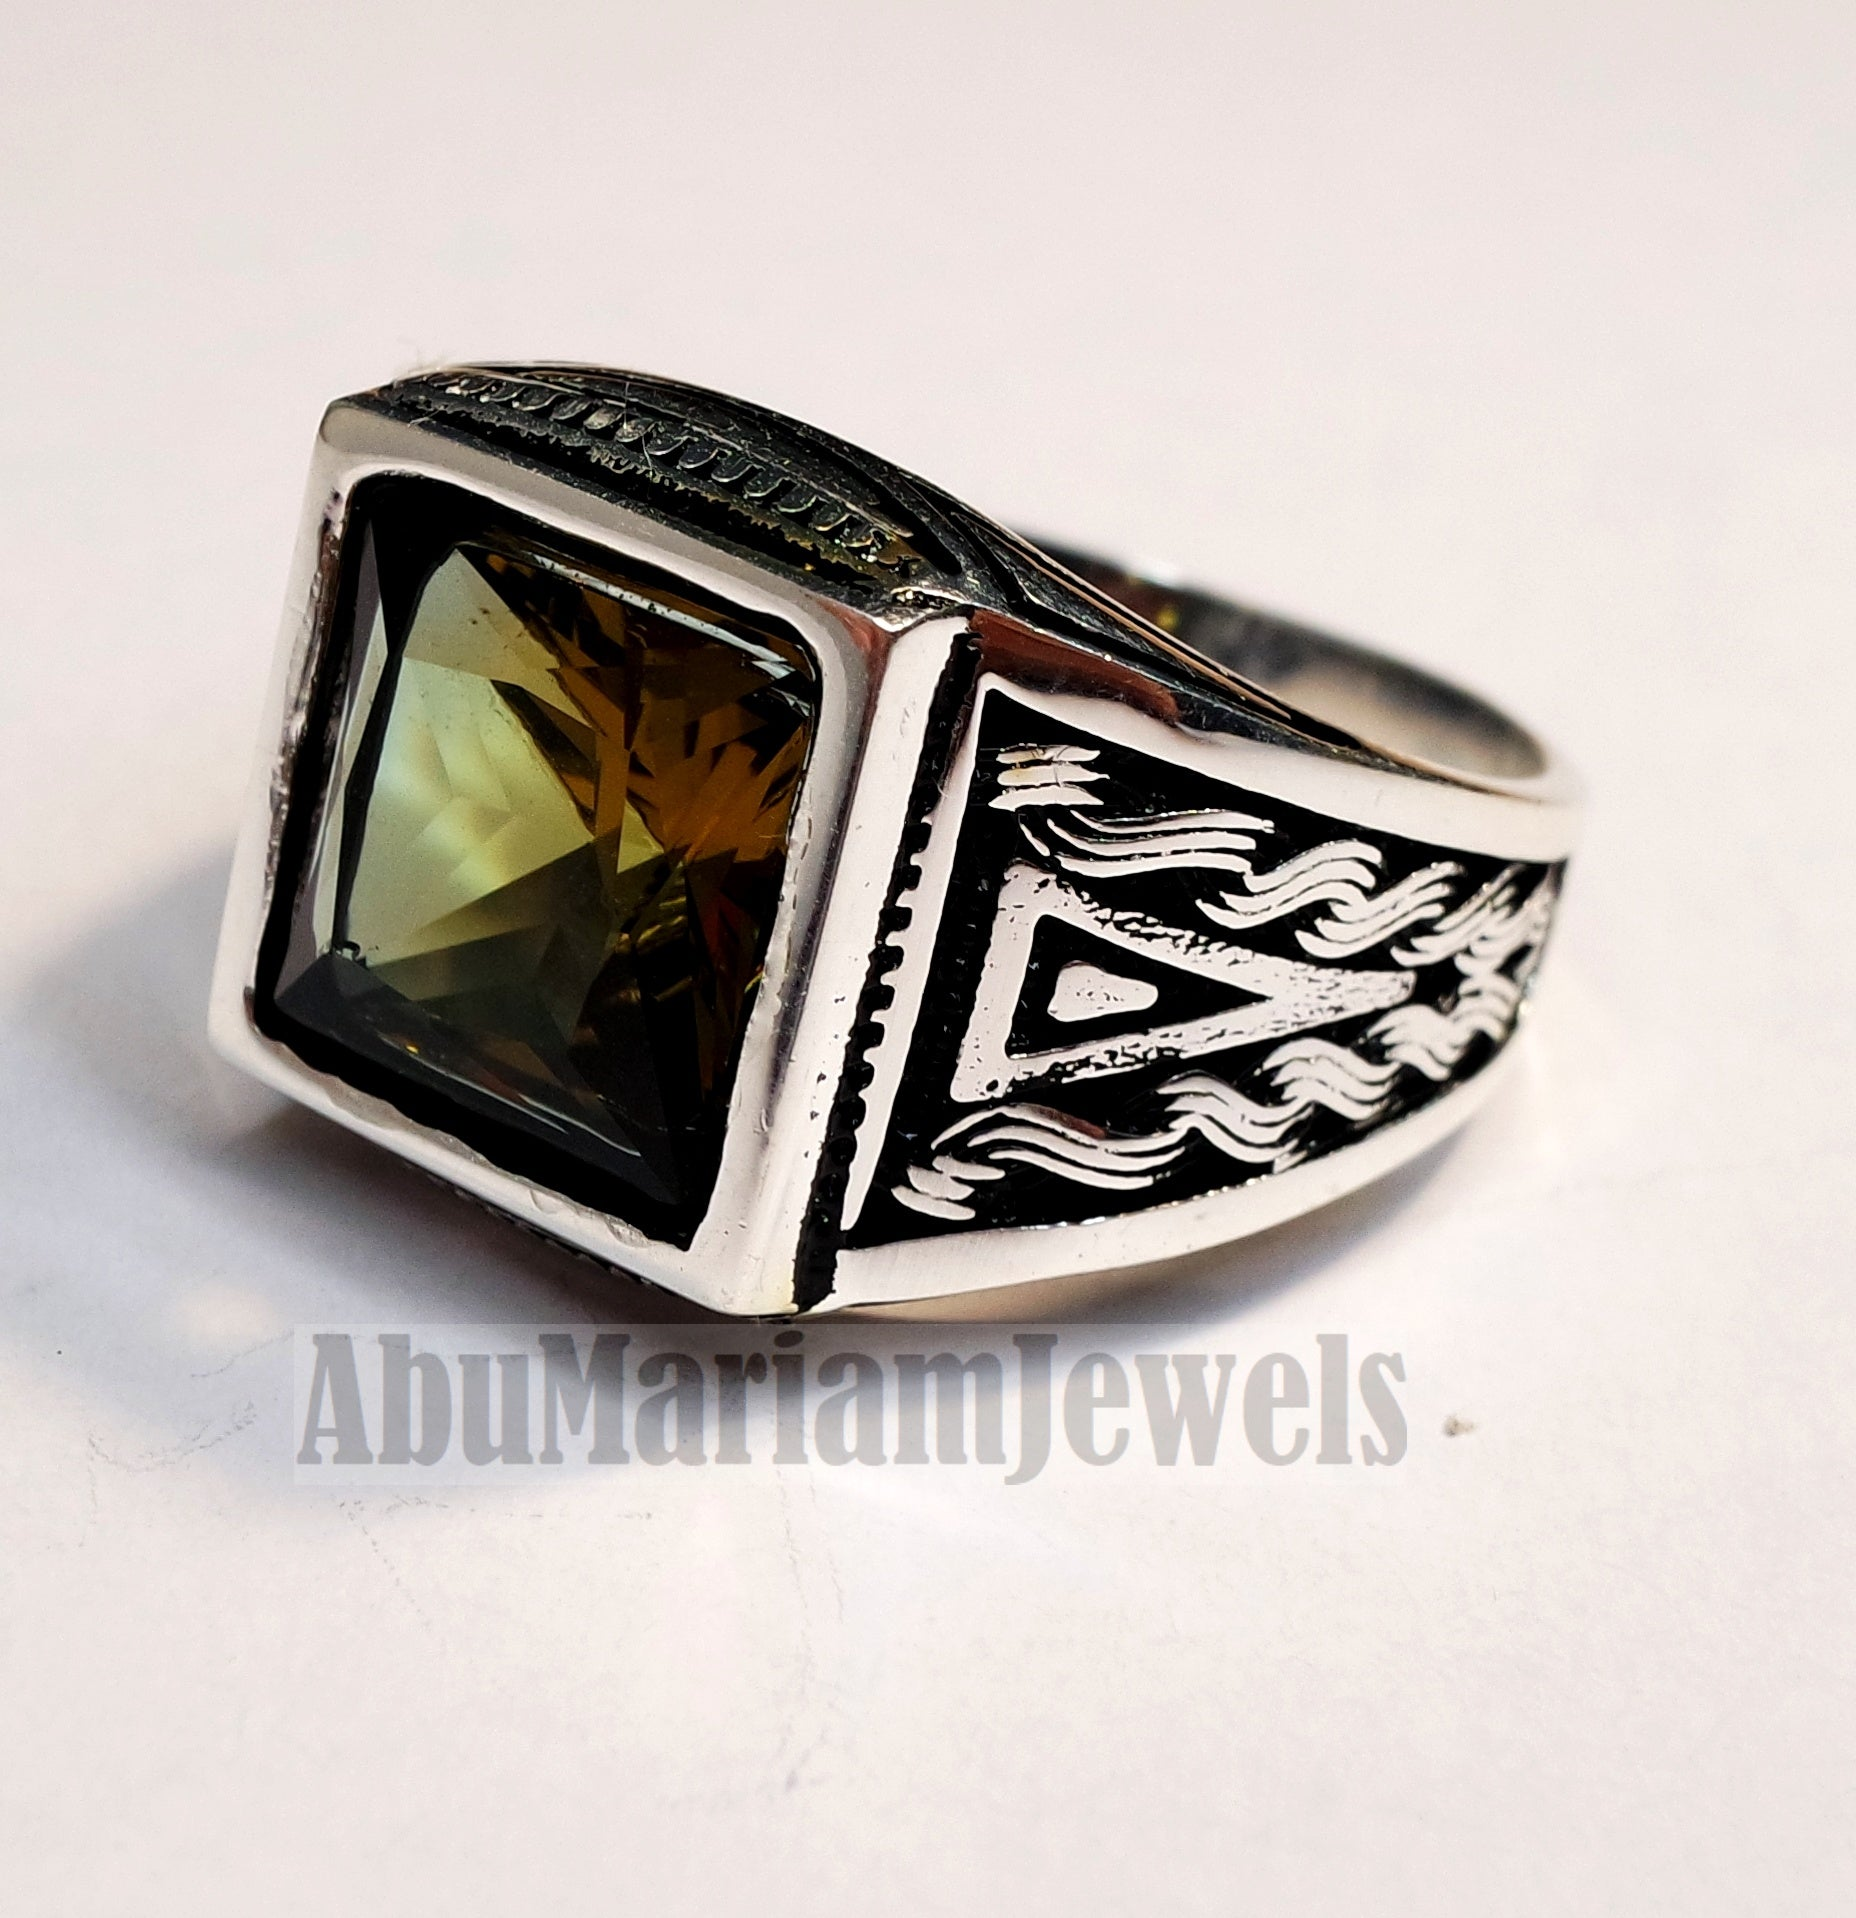 Zultanite natural changing color rare stone sterling silver 925 Diaspore men ring princess cut stone all sizes 3